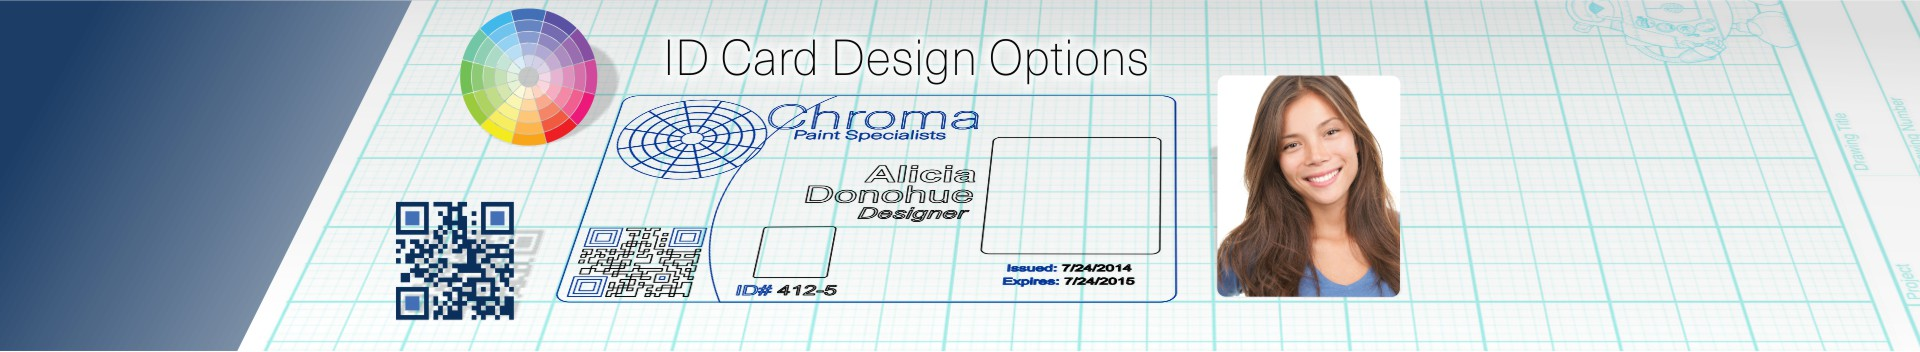 ID Card Design Options